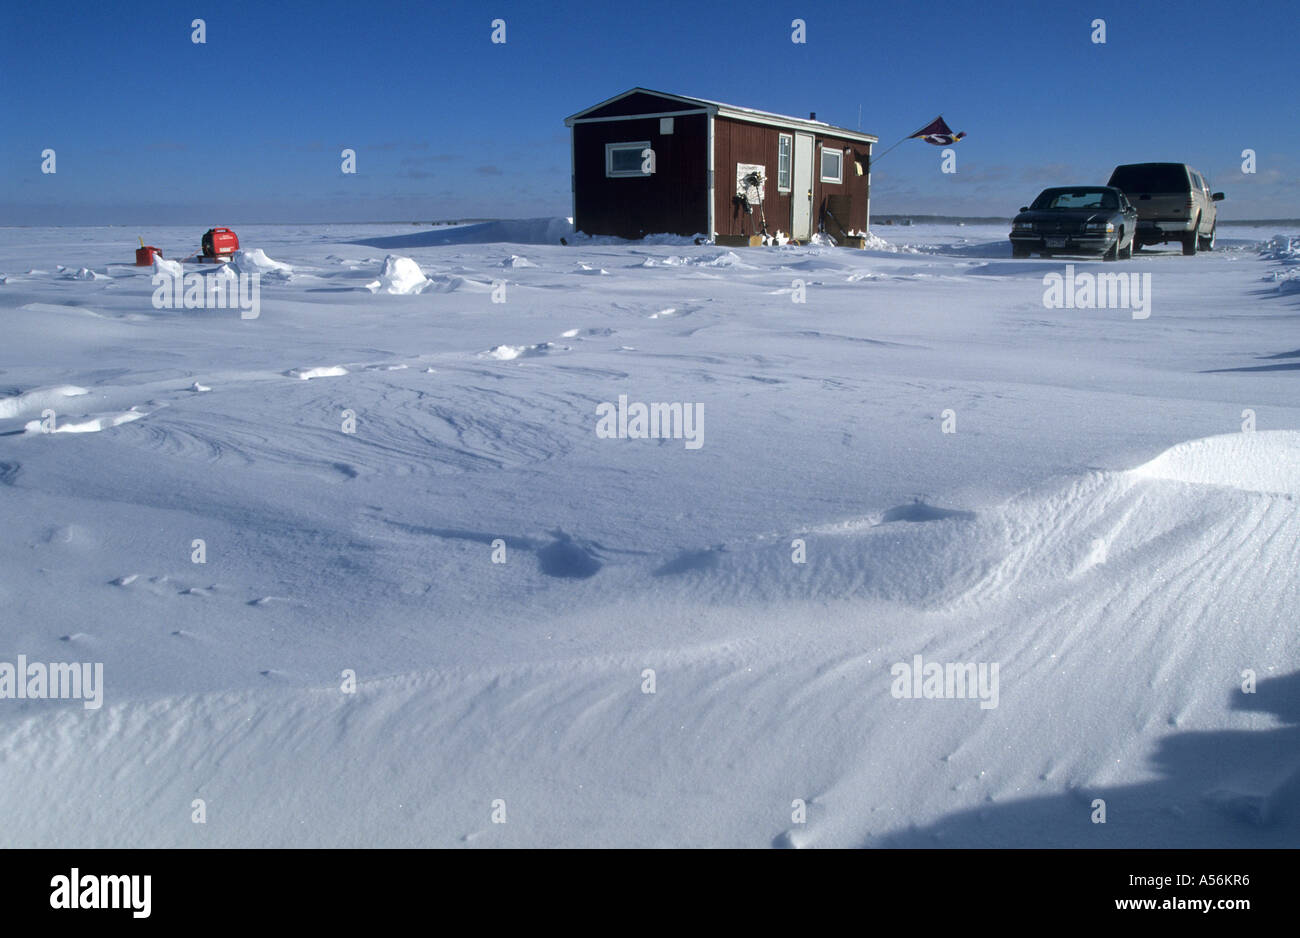 Ice fishing cabin mille lacs lake minnesota usa stock for Lake mille lacs ice fishing